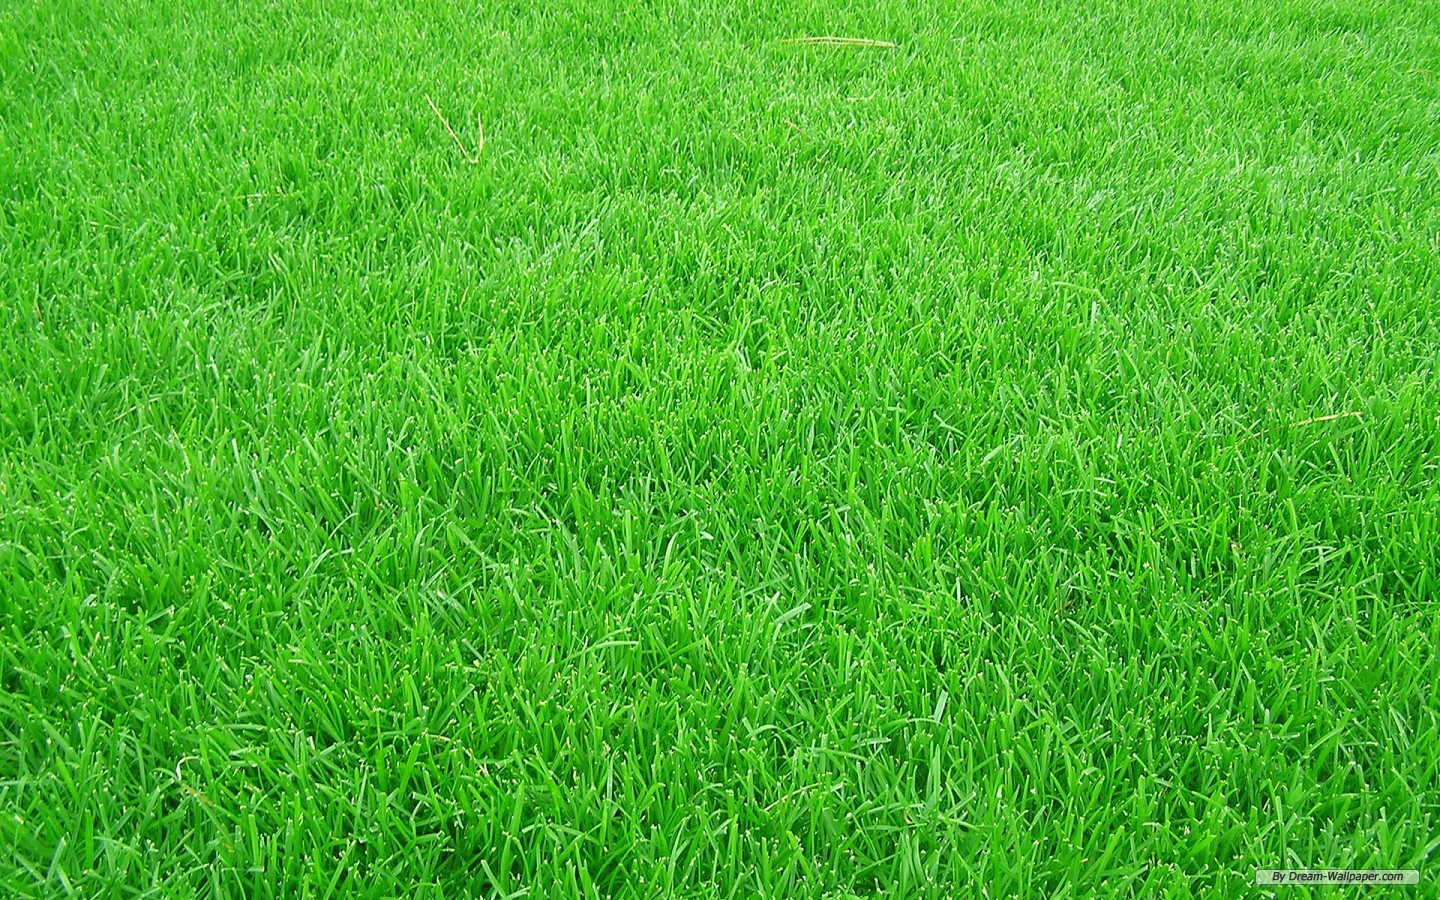 Free Nature wallpaper - Grass Football Pitches wallpaper - 1440x900 wallpaper - Index 16